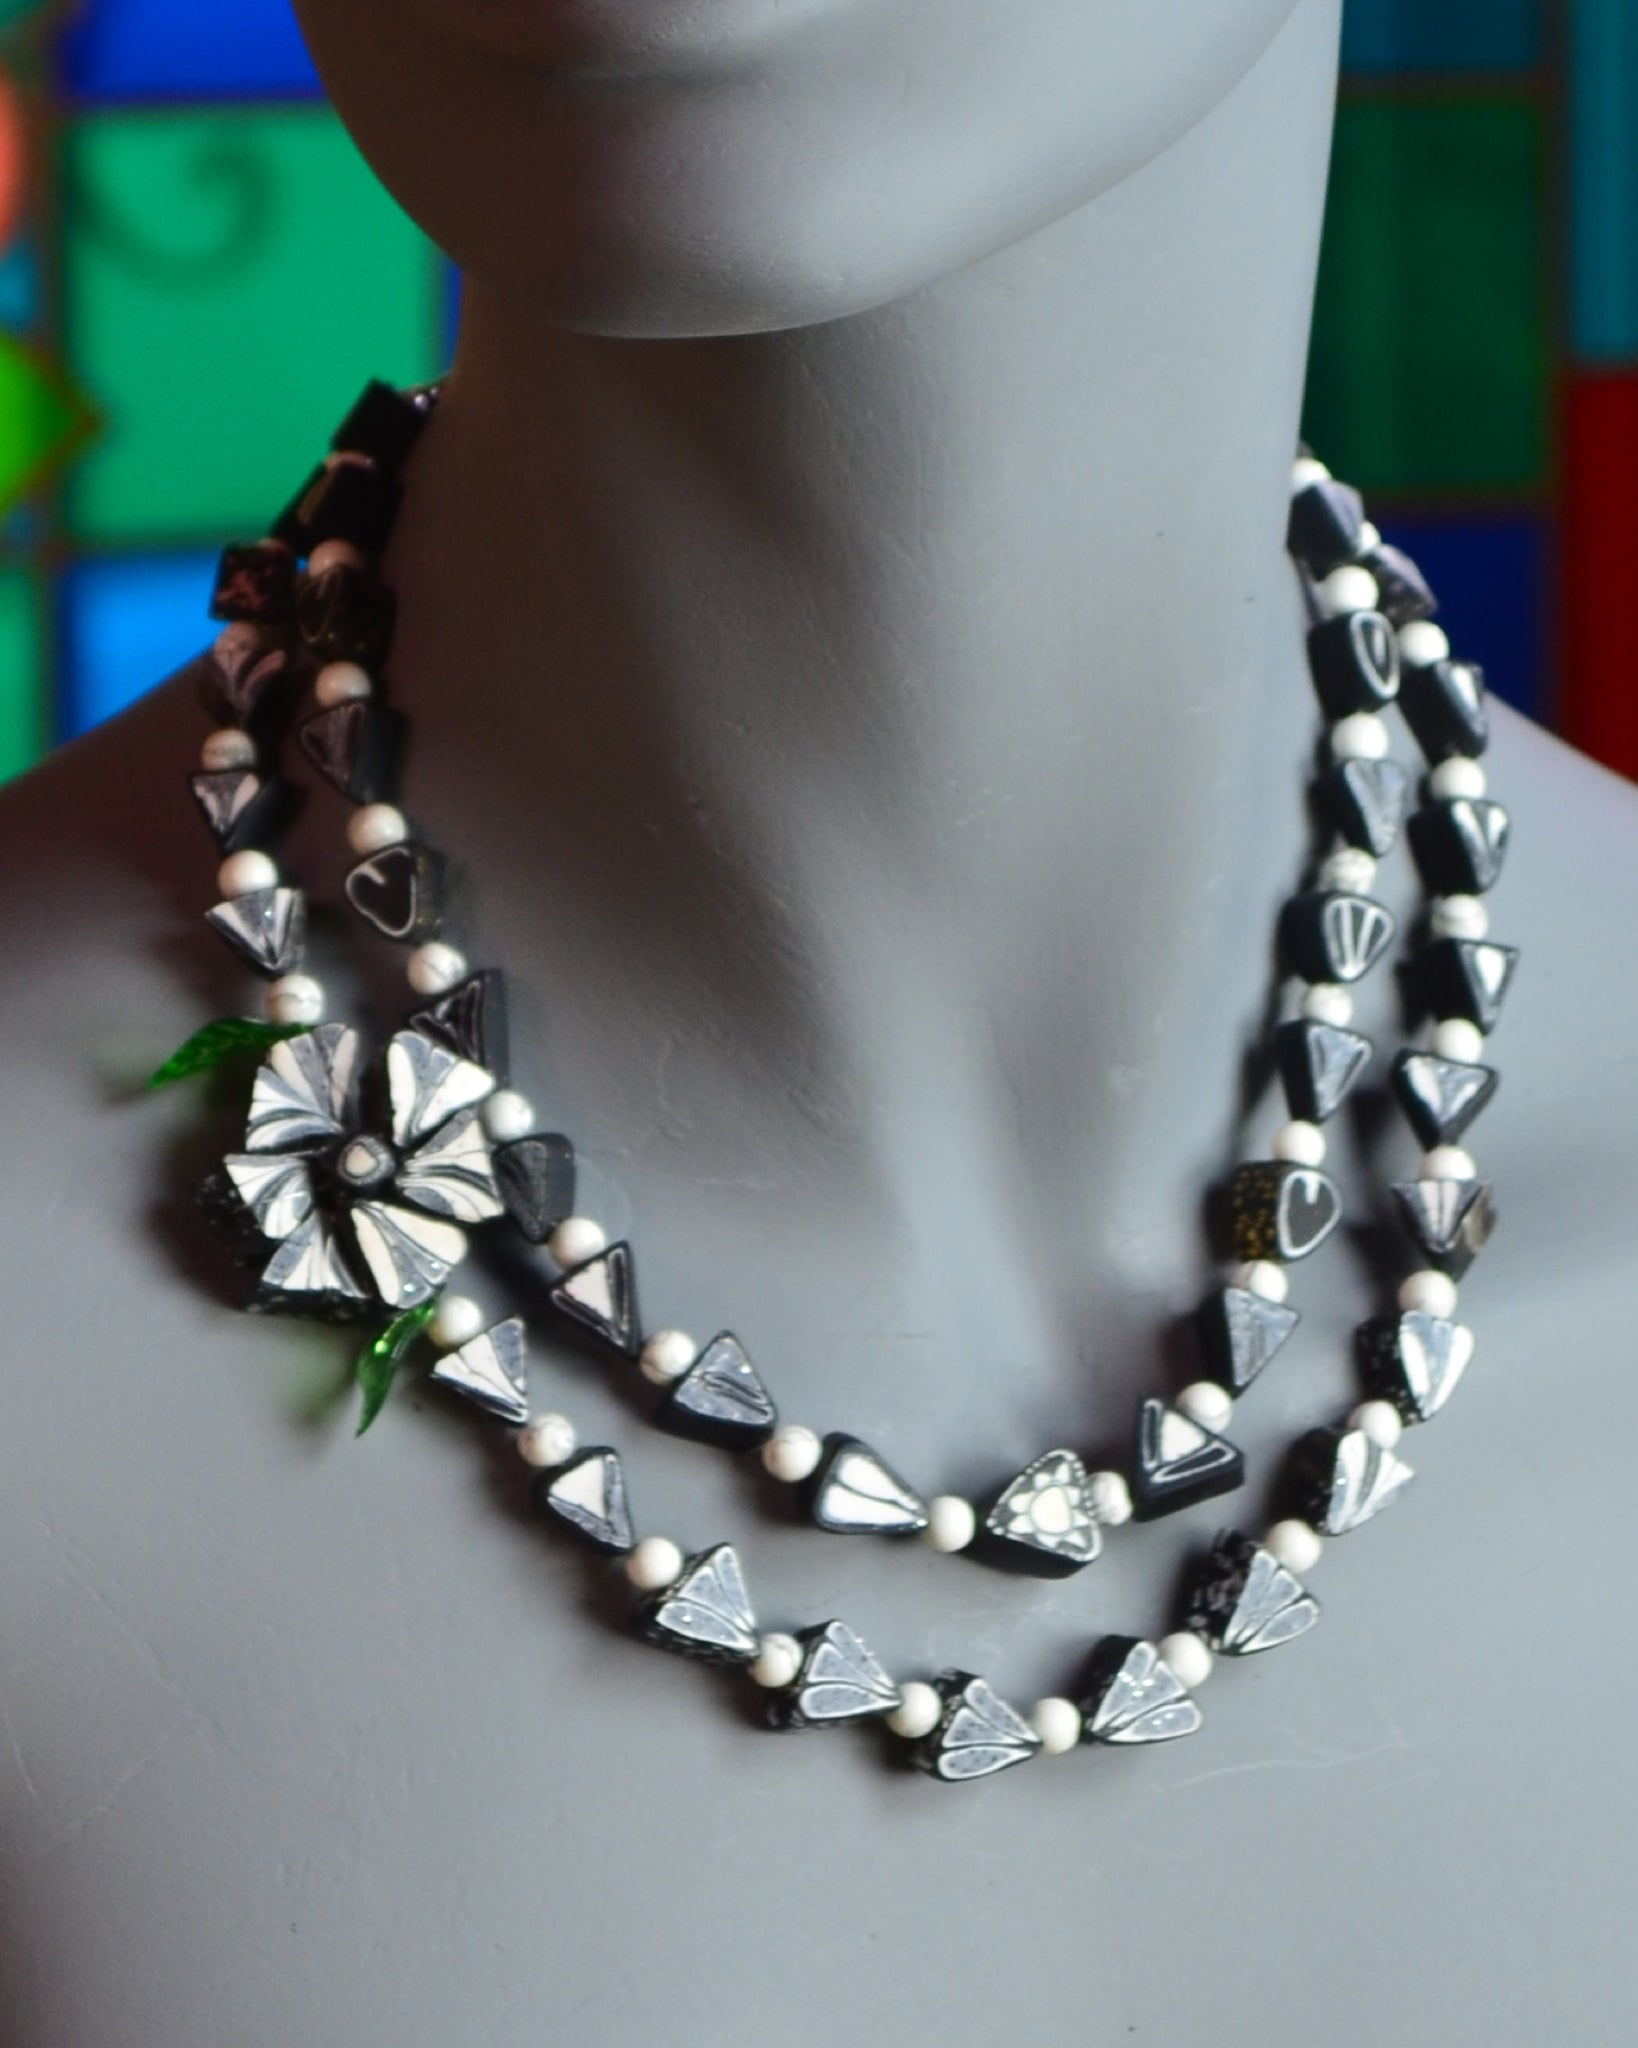 This necklace is made of delicate black and white polymer beads, yet its impact is powerful, reflecting a subtle competence and inner resilience of the modern woman.